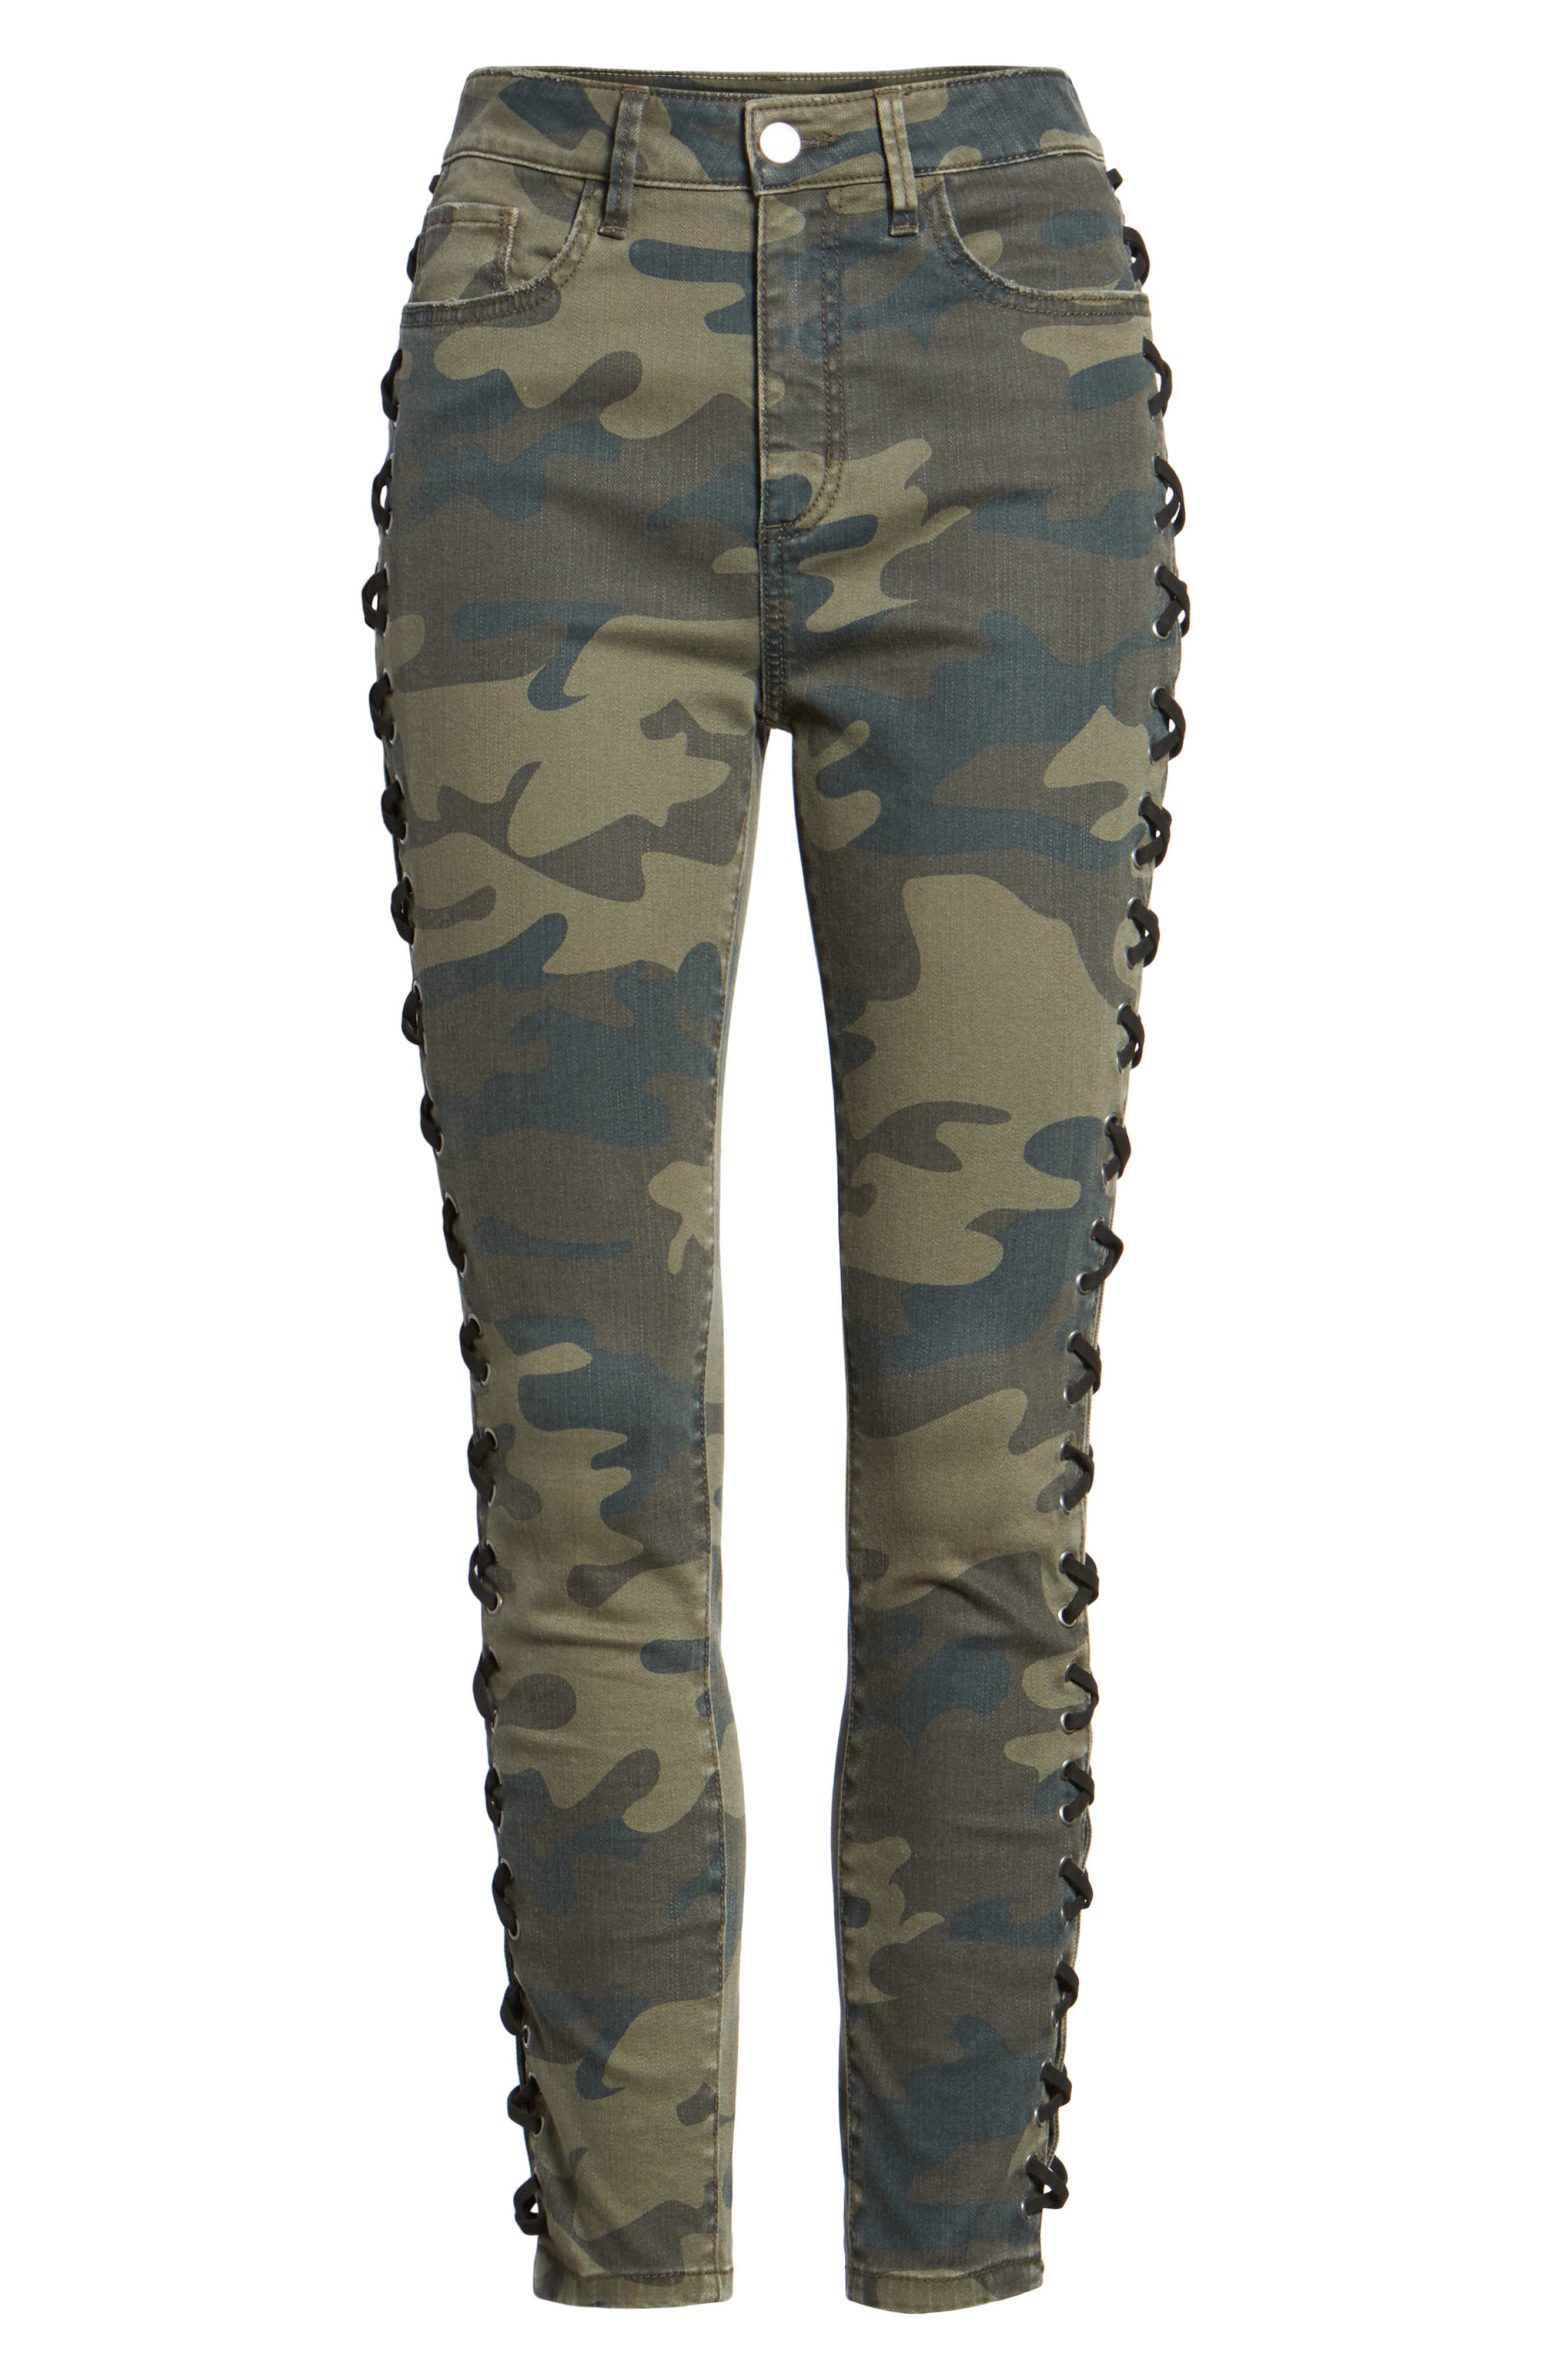 Lace Up Camo Crop Skinny Jeans,                             Alternate thumbnail 6, color,                             Camo Grunge Overdye